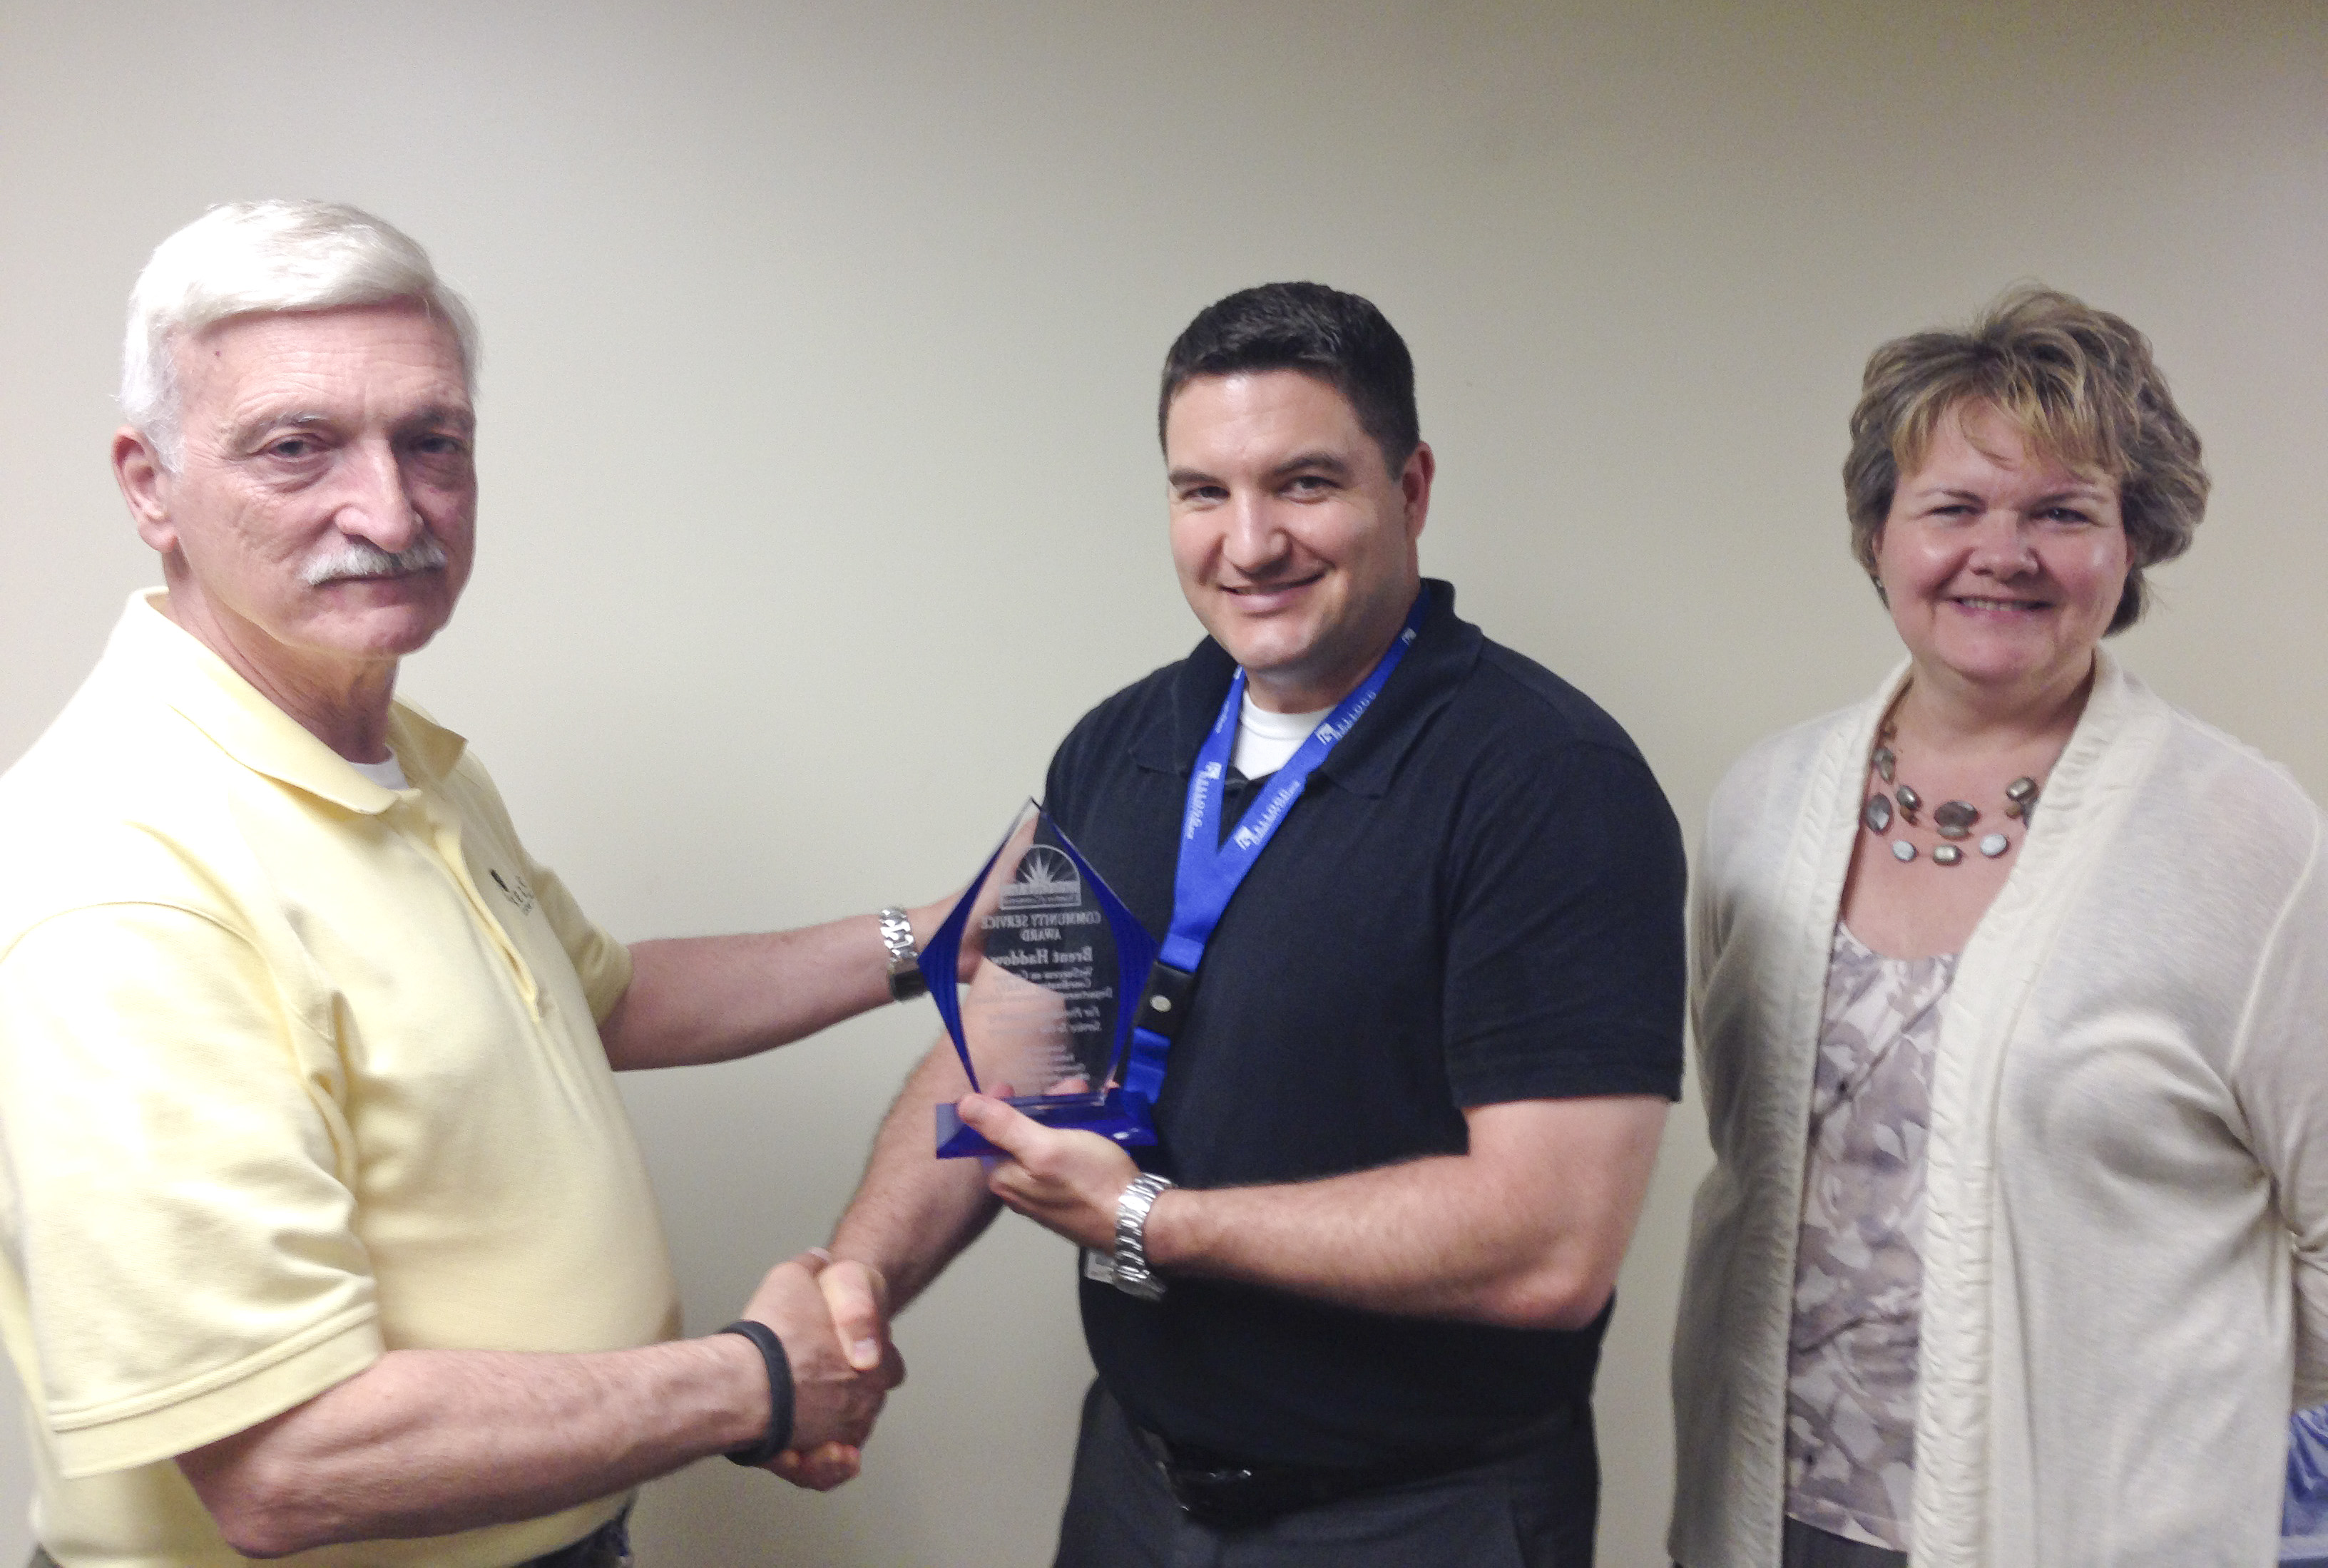 Brent Haddow, a VetSuccess on Campus veterans counselor, accepts an award.